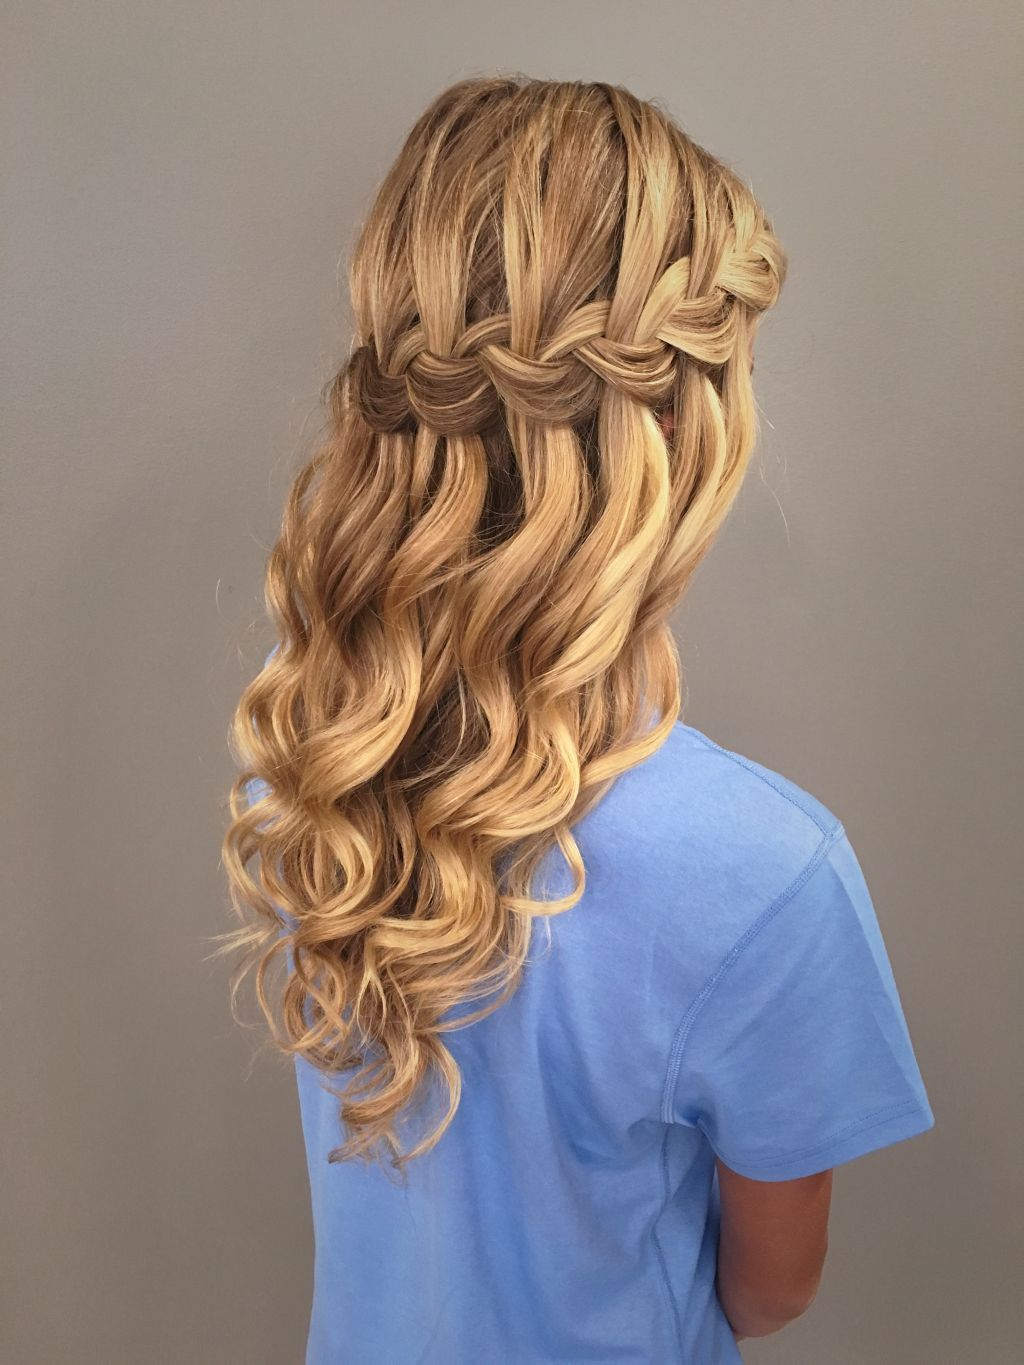 24 Best Homecoming Hairstyles For Long Hair 20 Cute Homecoming Hairstyles 2018 Homecoming Hai Cute Hairstyles For Short Hair Hair Styles Braided Prom Hair